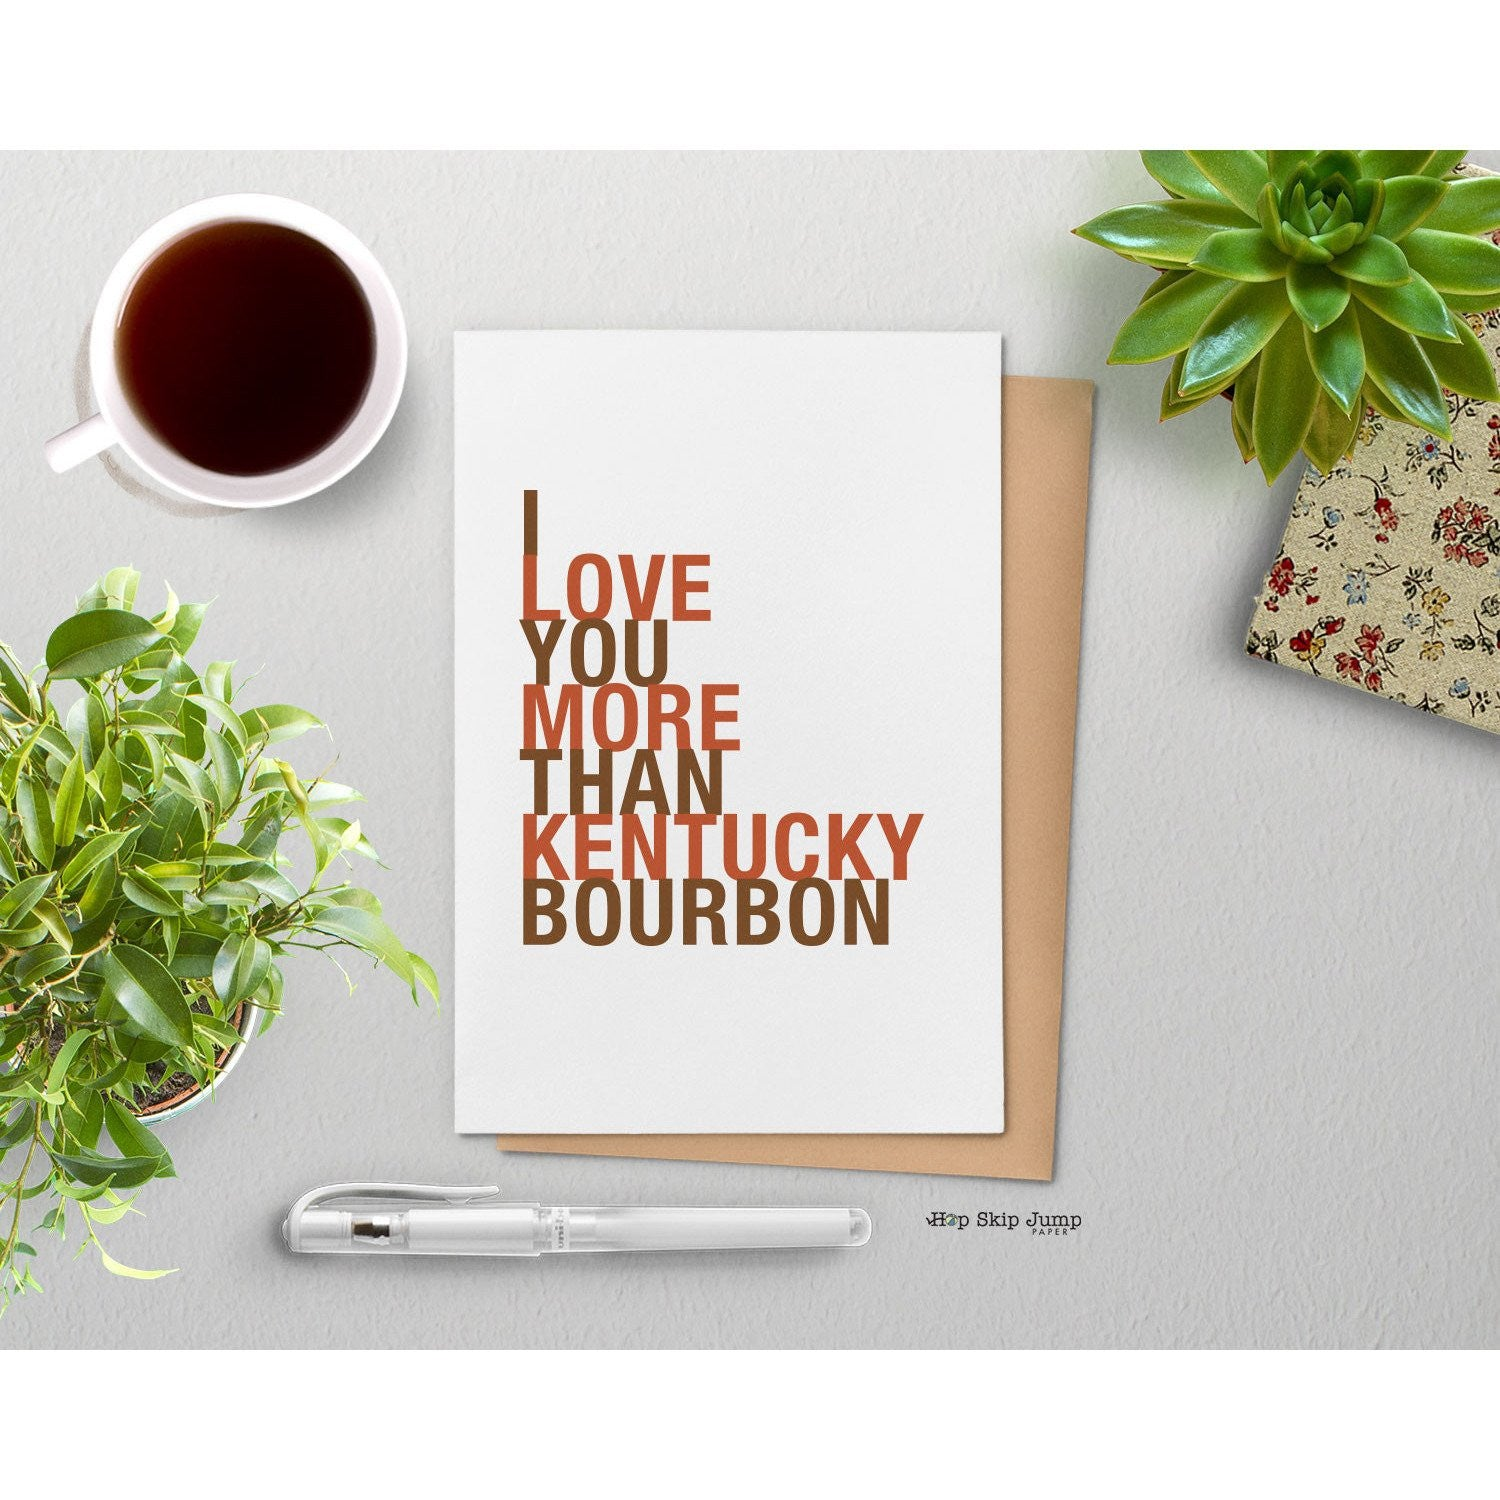 I Love You More Than Kentucky Bourbon greeting card  - Shop Online